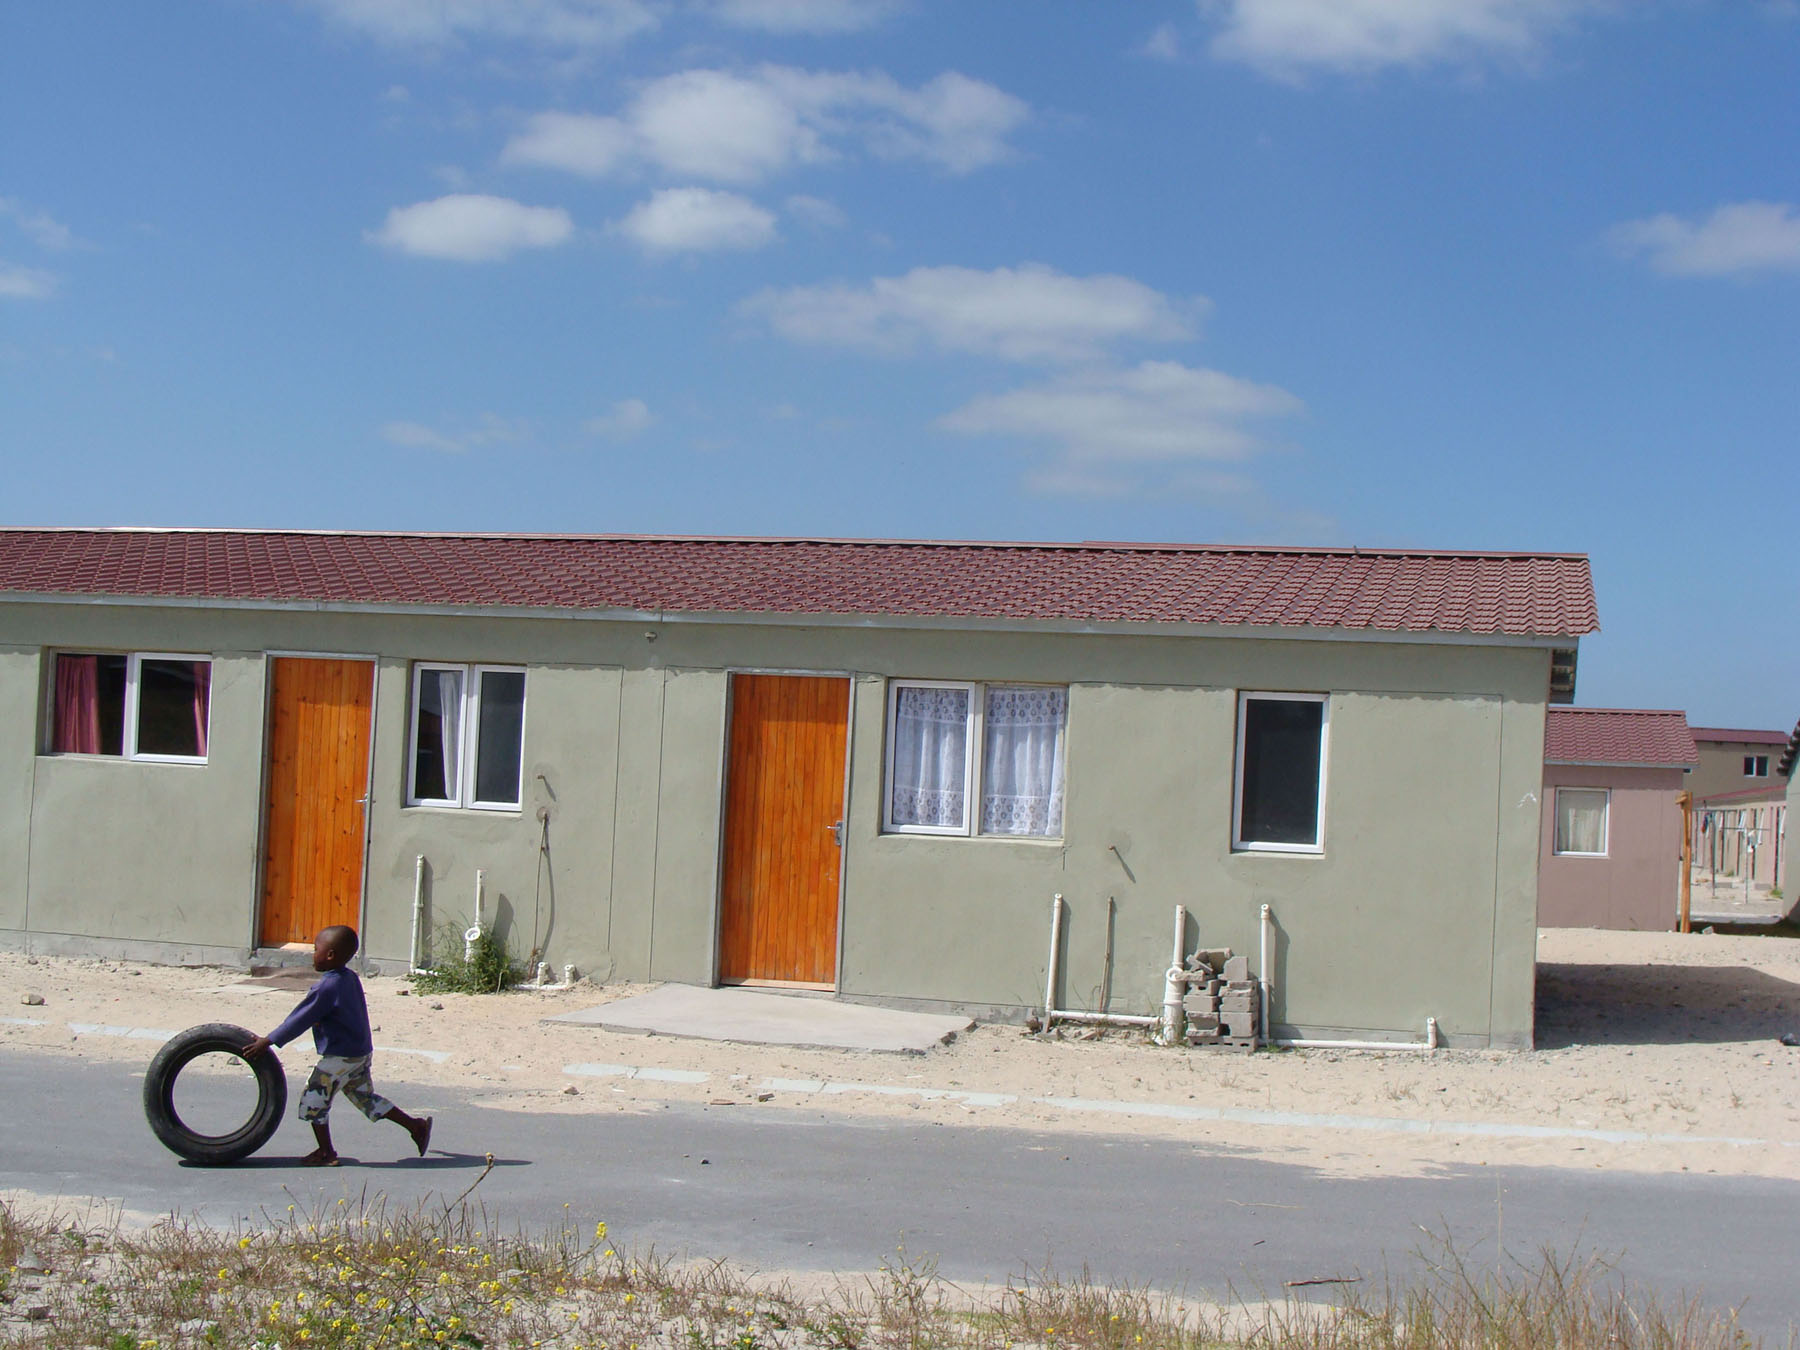 Houses in their thousands for Delft residents